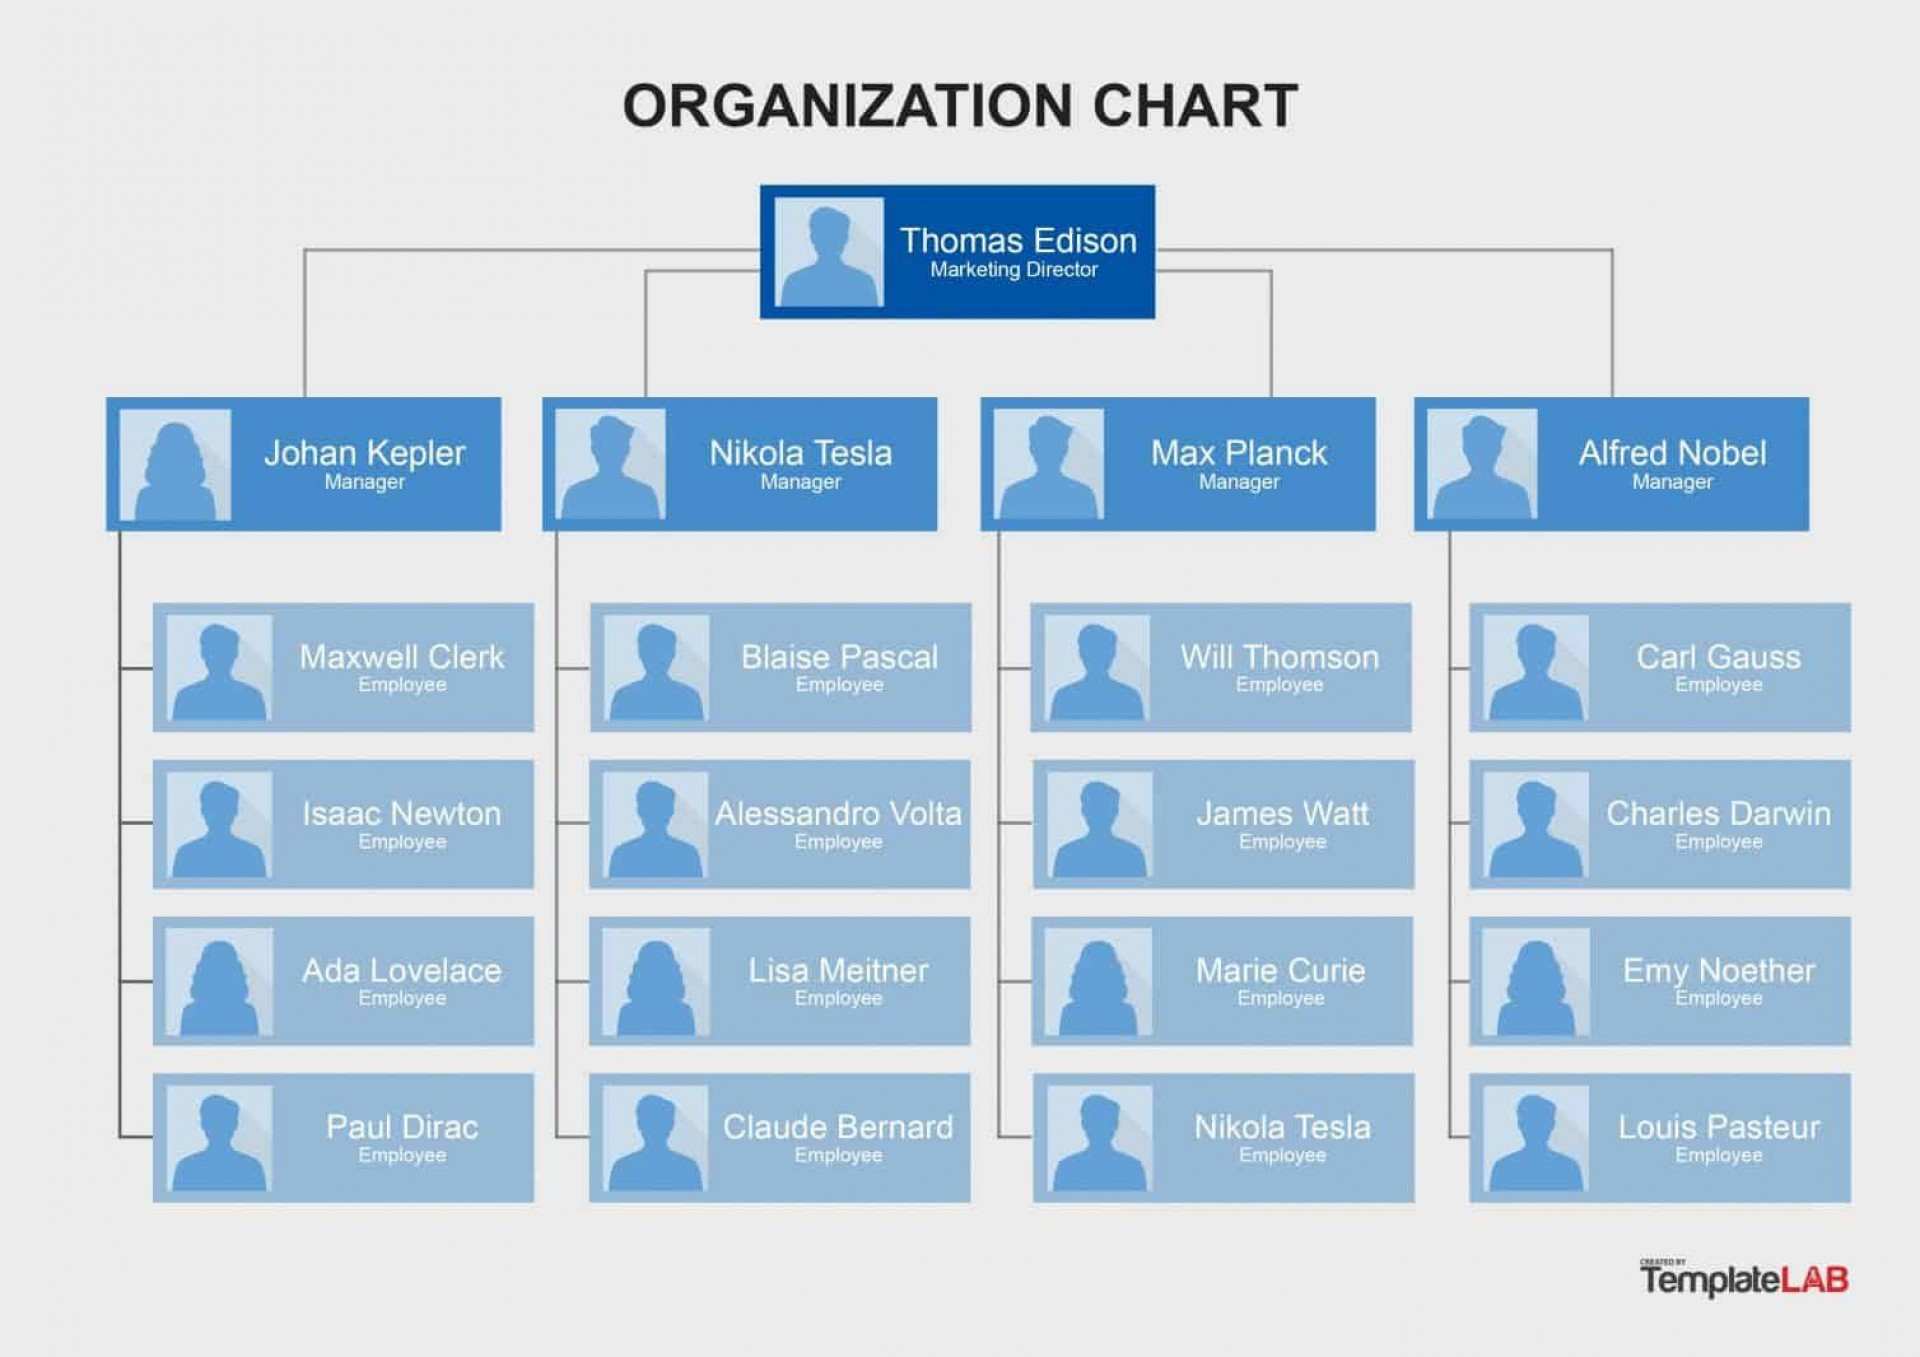 009 Incredible Org Chart Template Excel High Def  Free Download1920